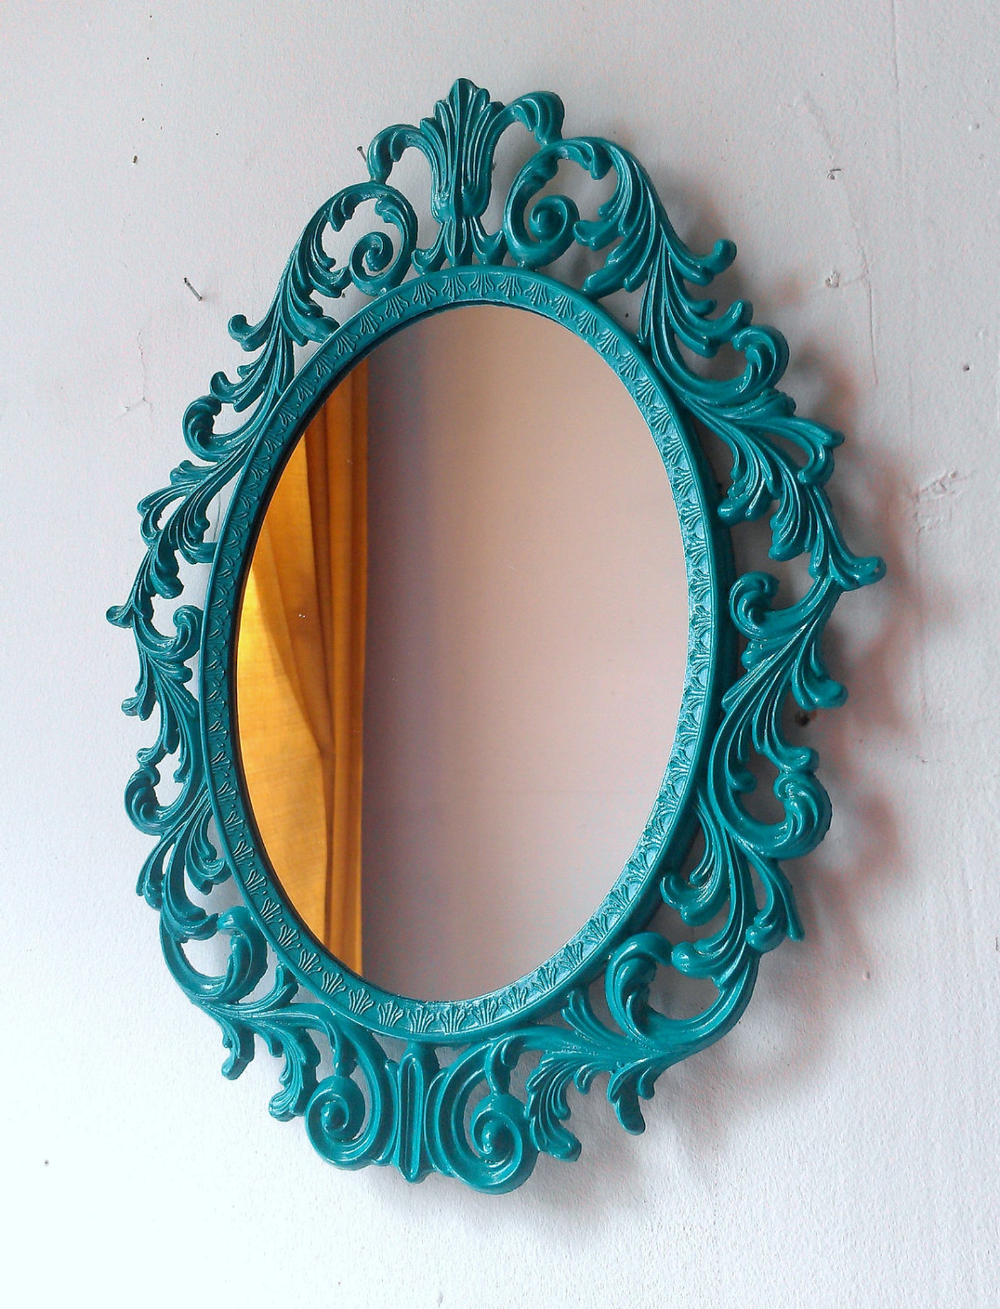 Silhouette Design Store Crown Frame For A Princess Princess Diy Princess Frame Crown Frames